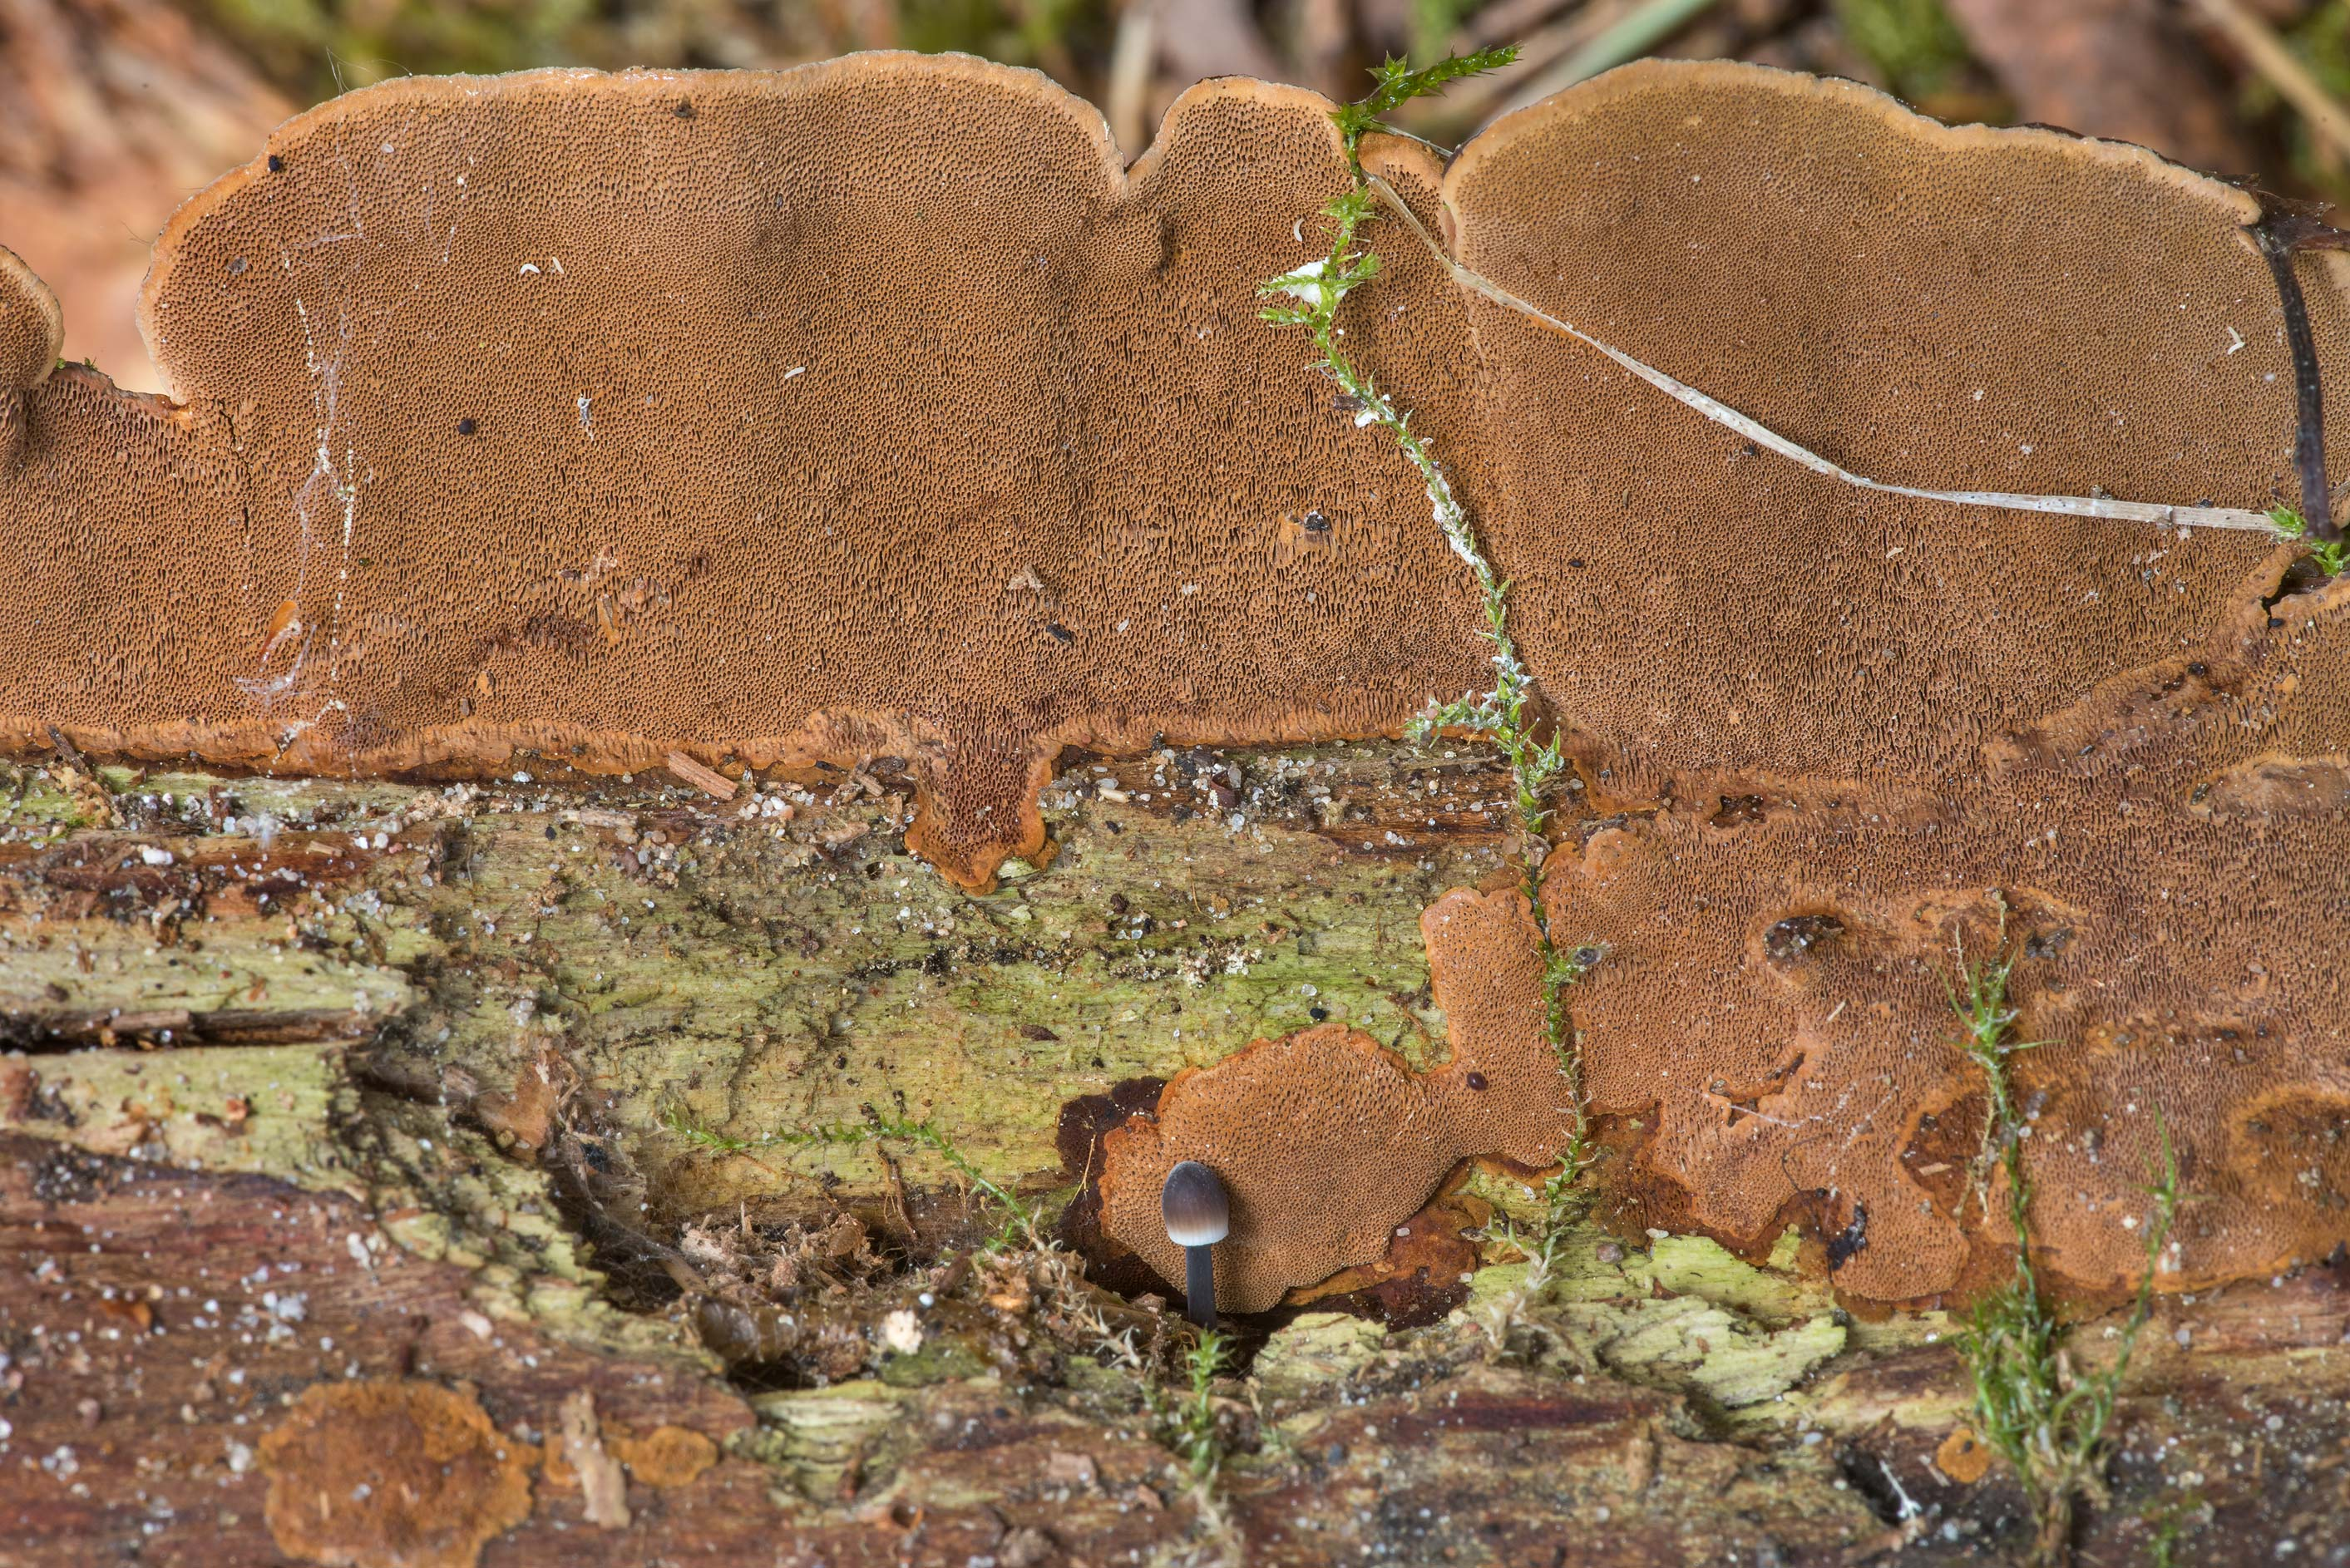 Underside of some brown polypore mushroom in...miles north from St.Petersburg. Russia